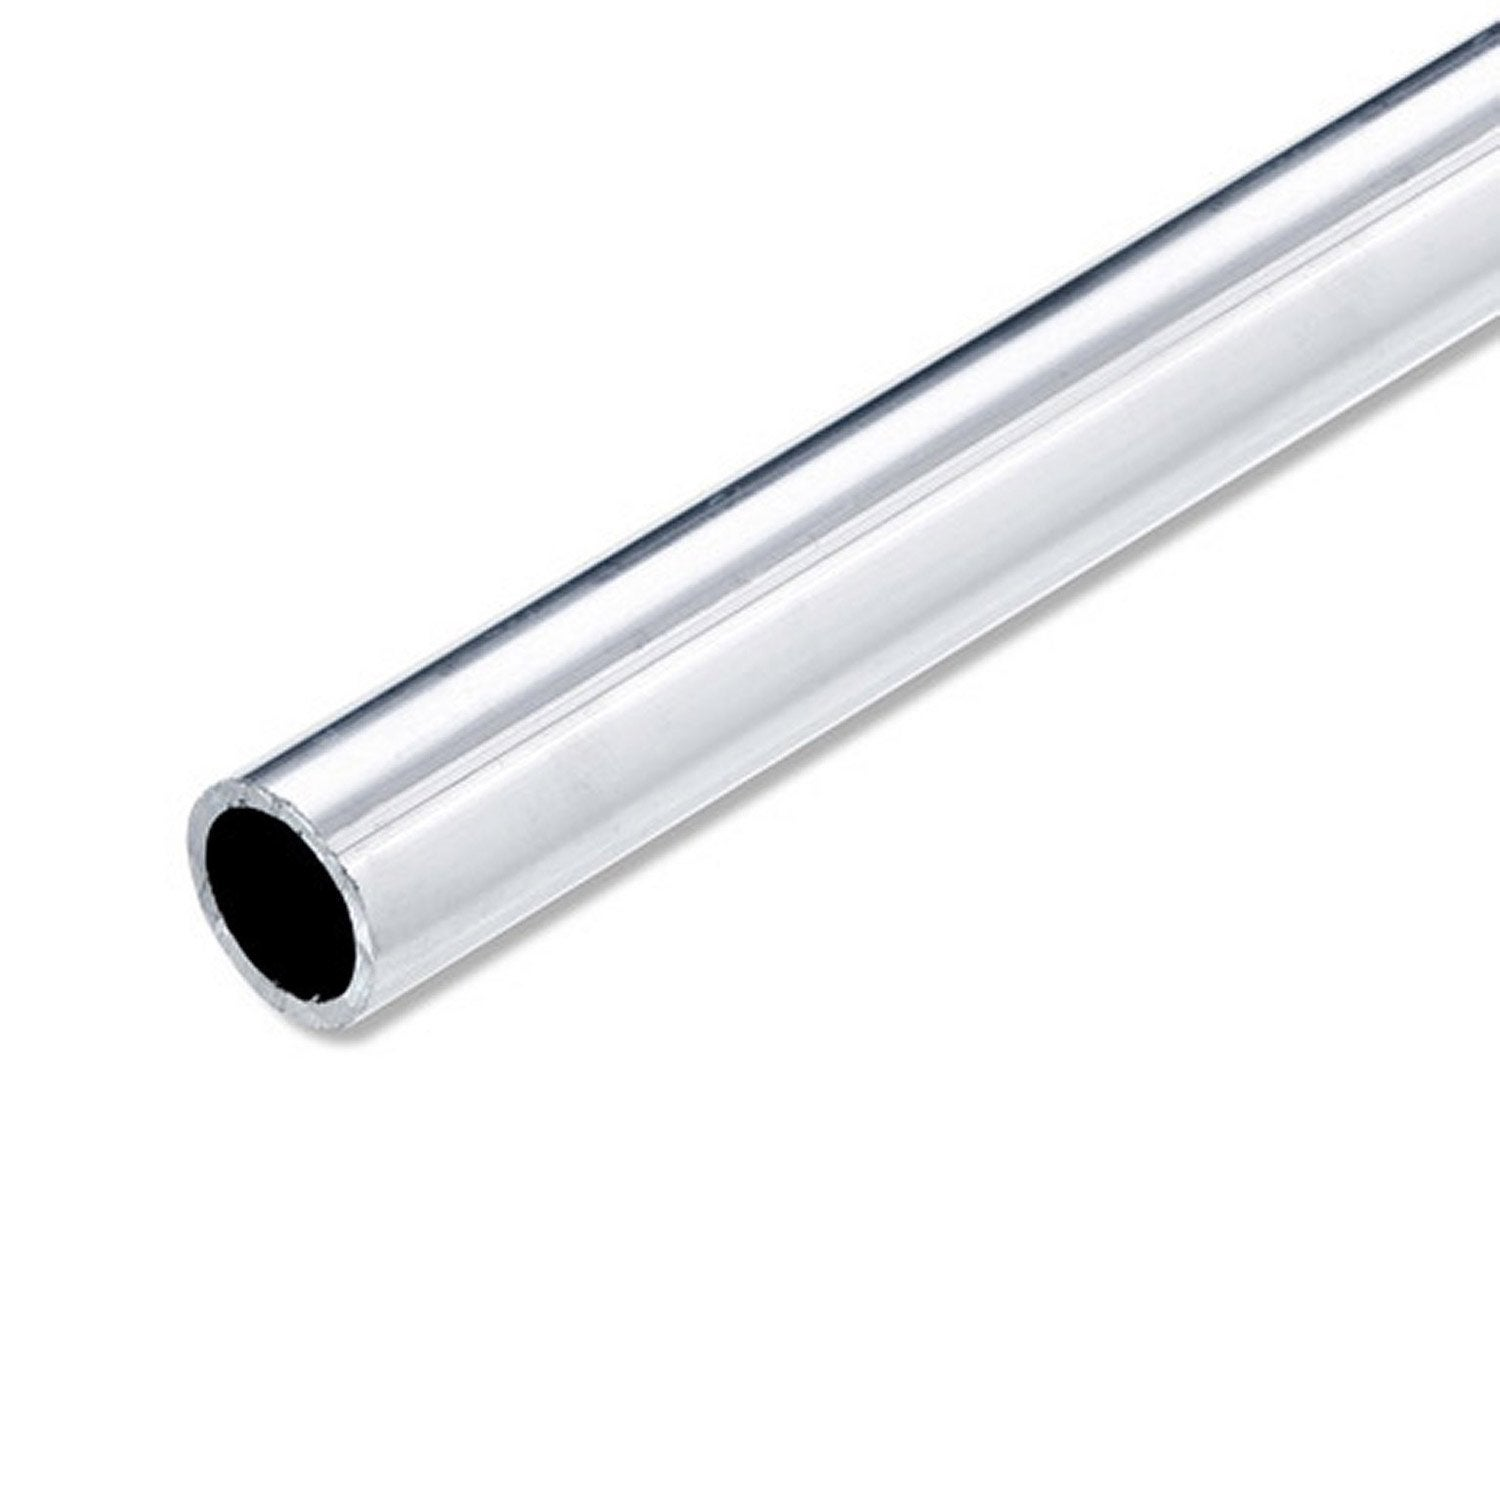 Tube rond aluminium brut l 2 5 m x mm leroy for Tube pvc 100 diametre interieur